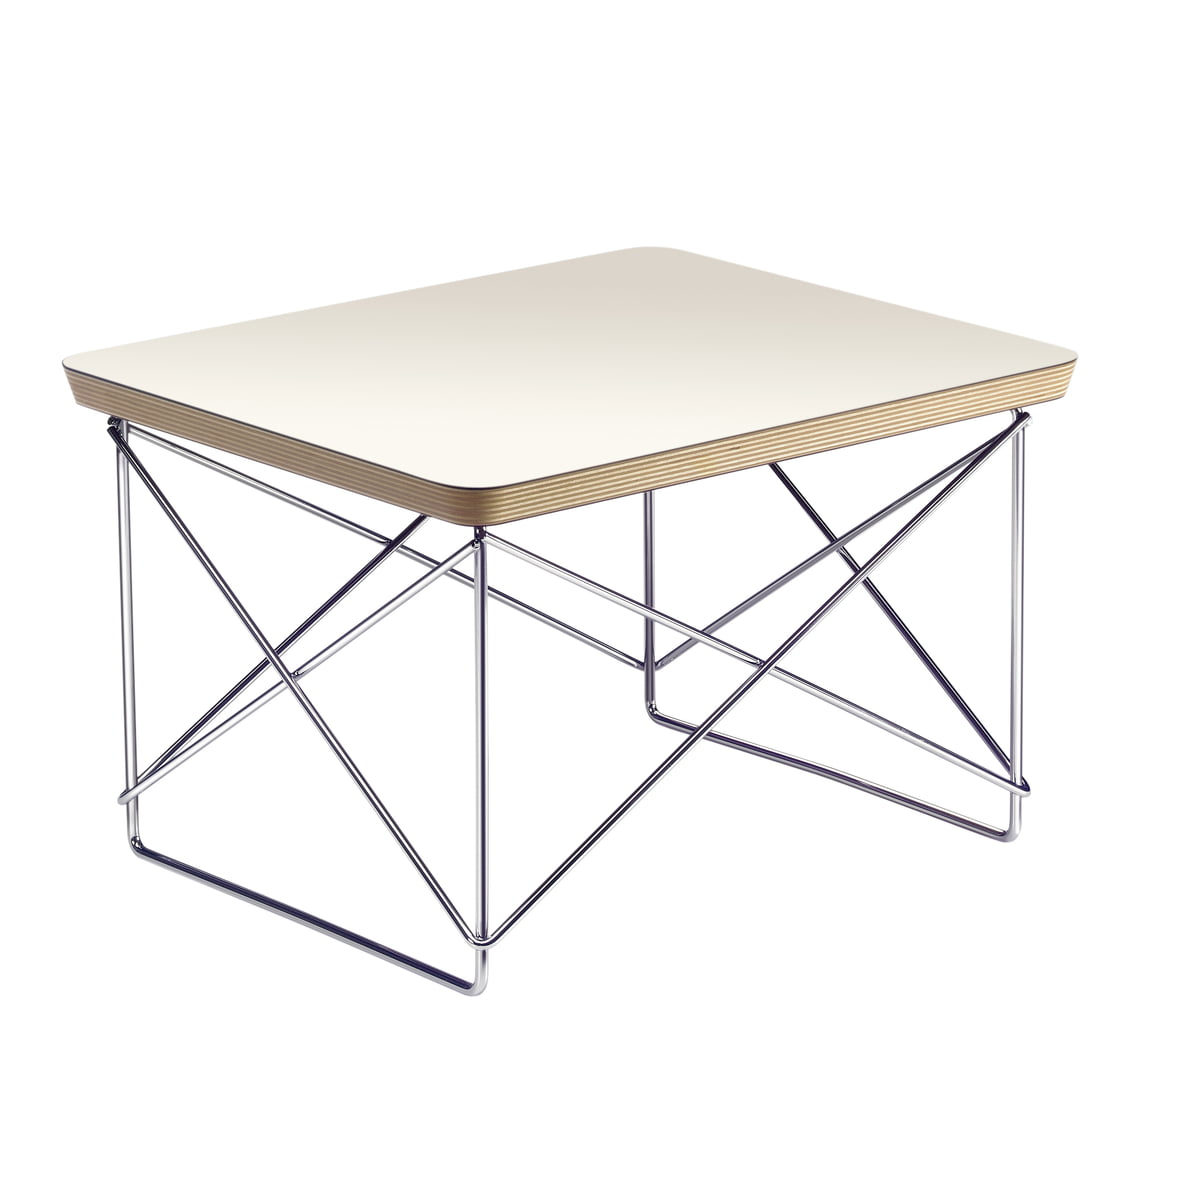 Eames occasional table ltr by vitra connox eames occasional table ltr by vitra in white keyboard keysfo Gallery